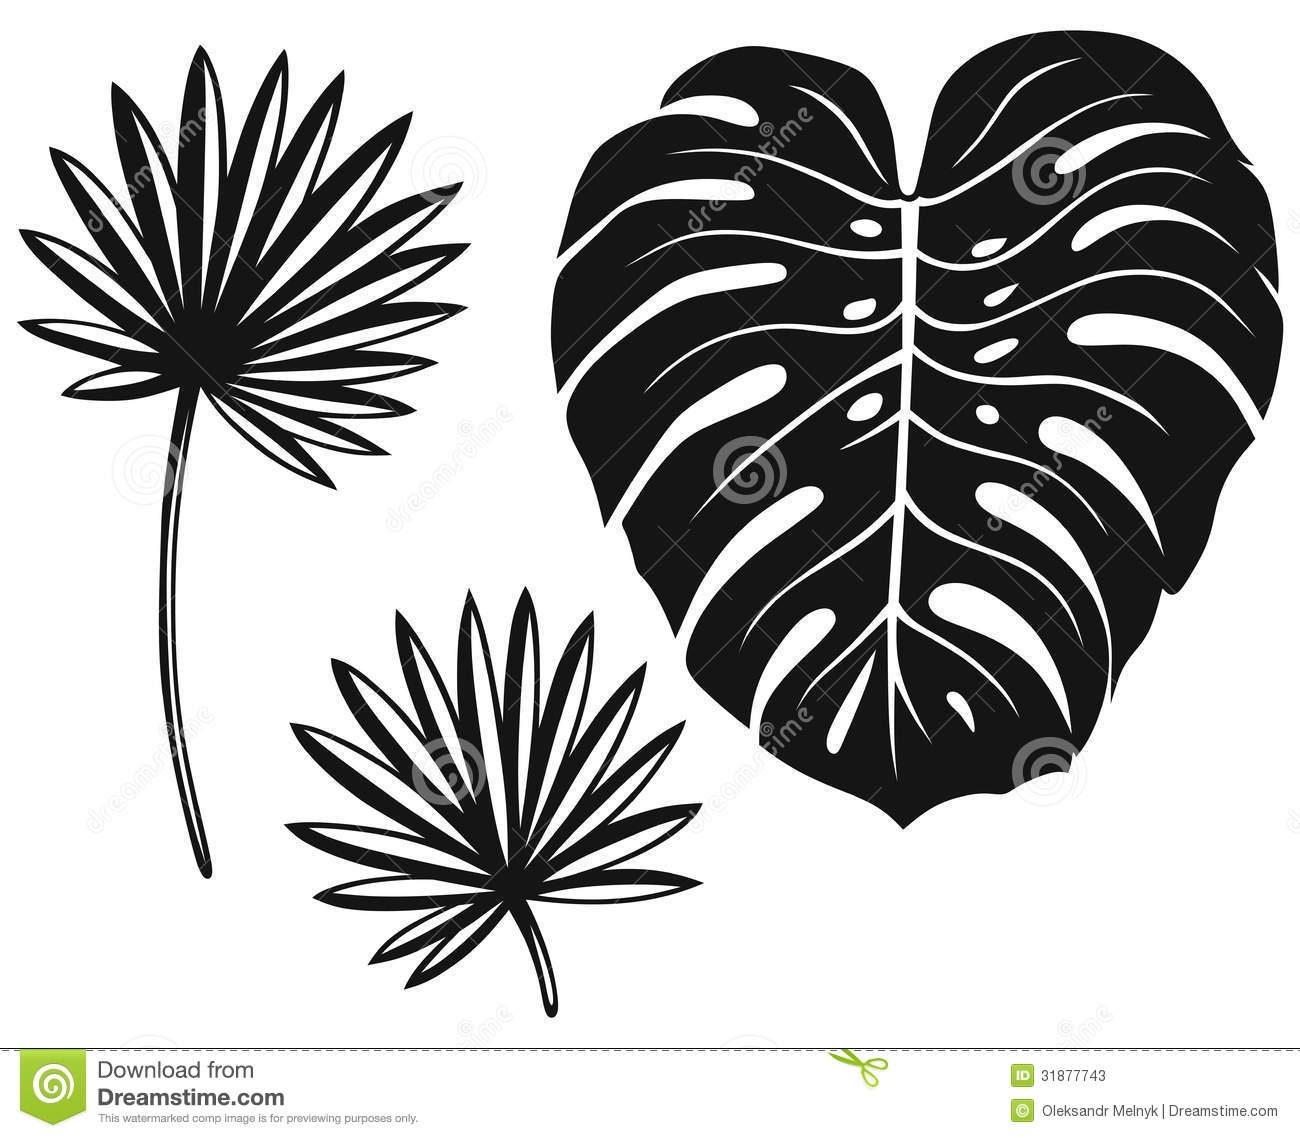 Palm leaf clipart #17